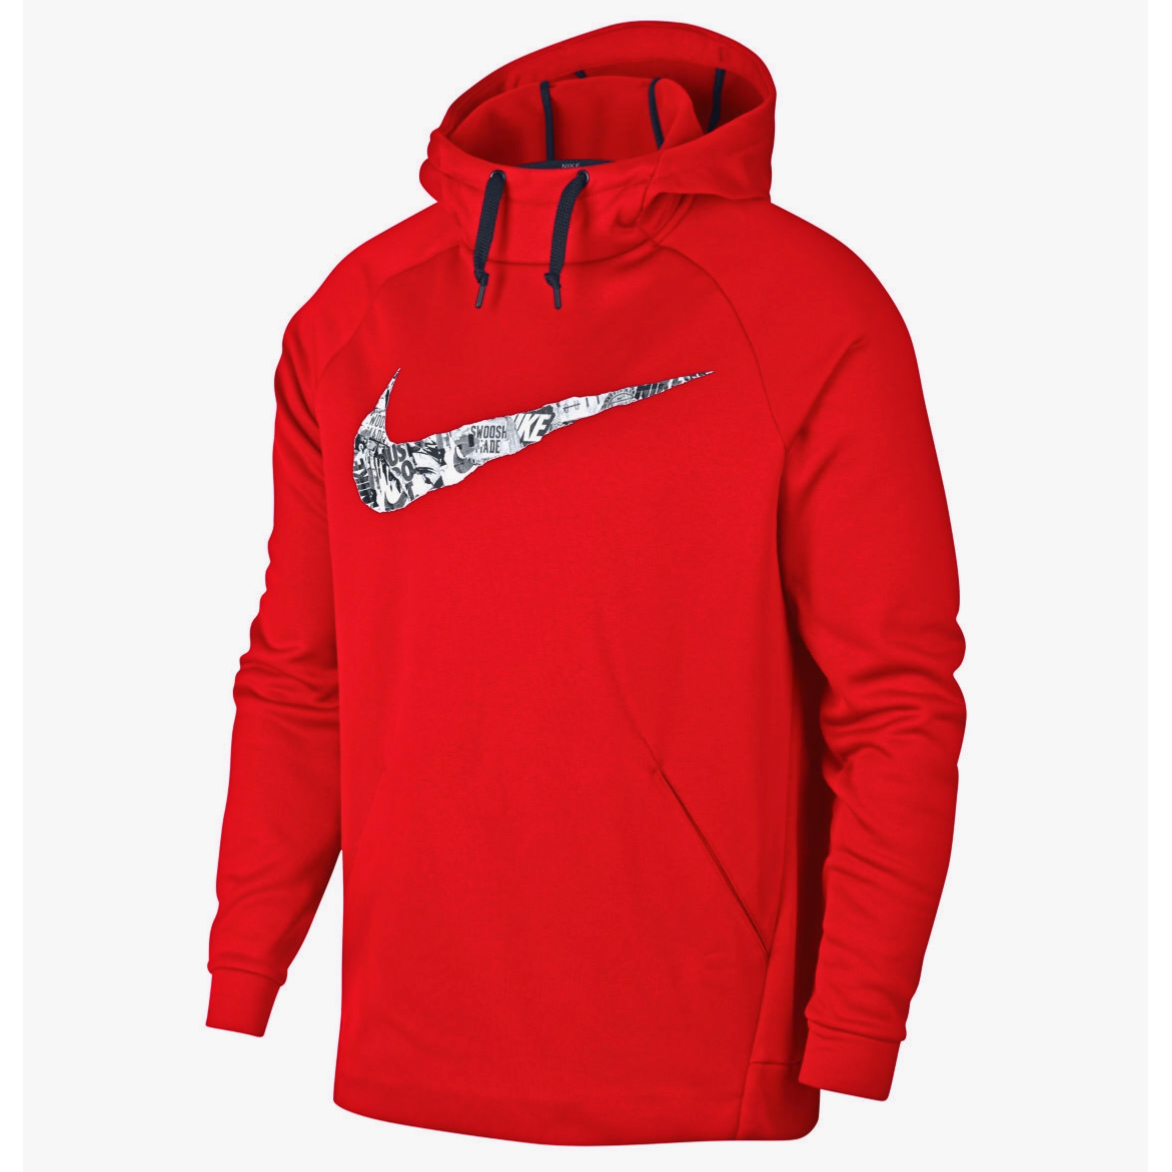 Nike Men's Therma Collage Logo Athletic Pullover Hoodie - Red, L